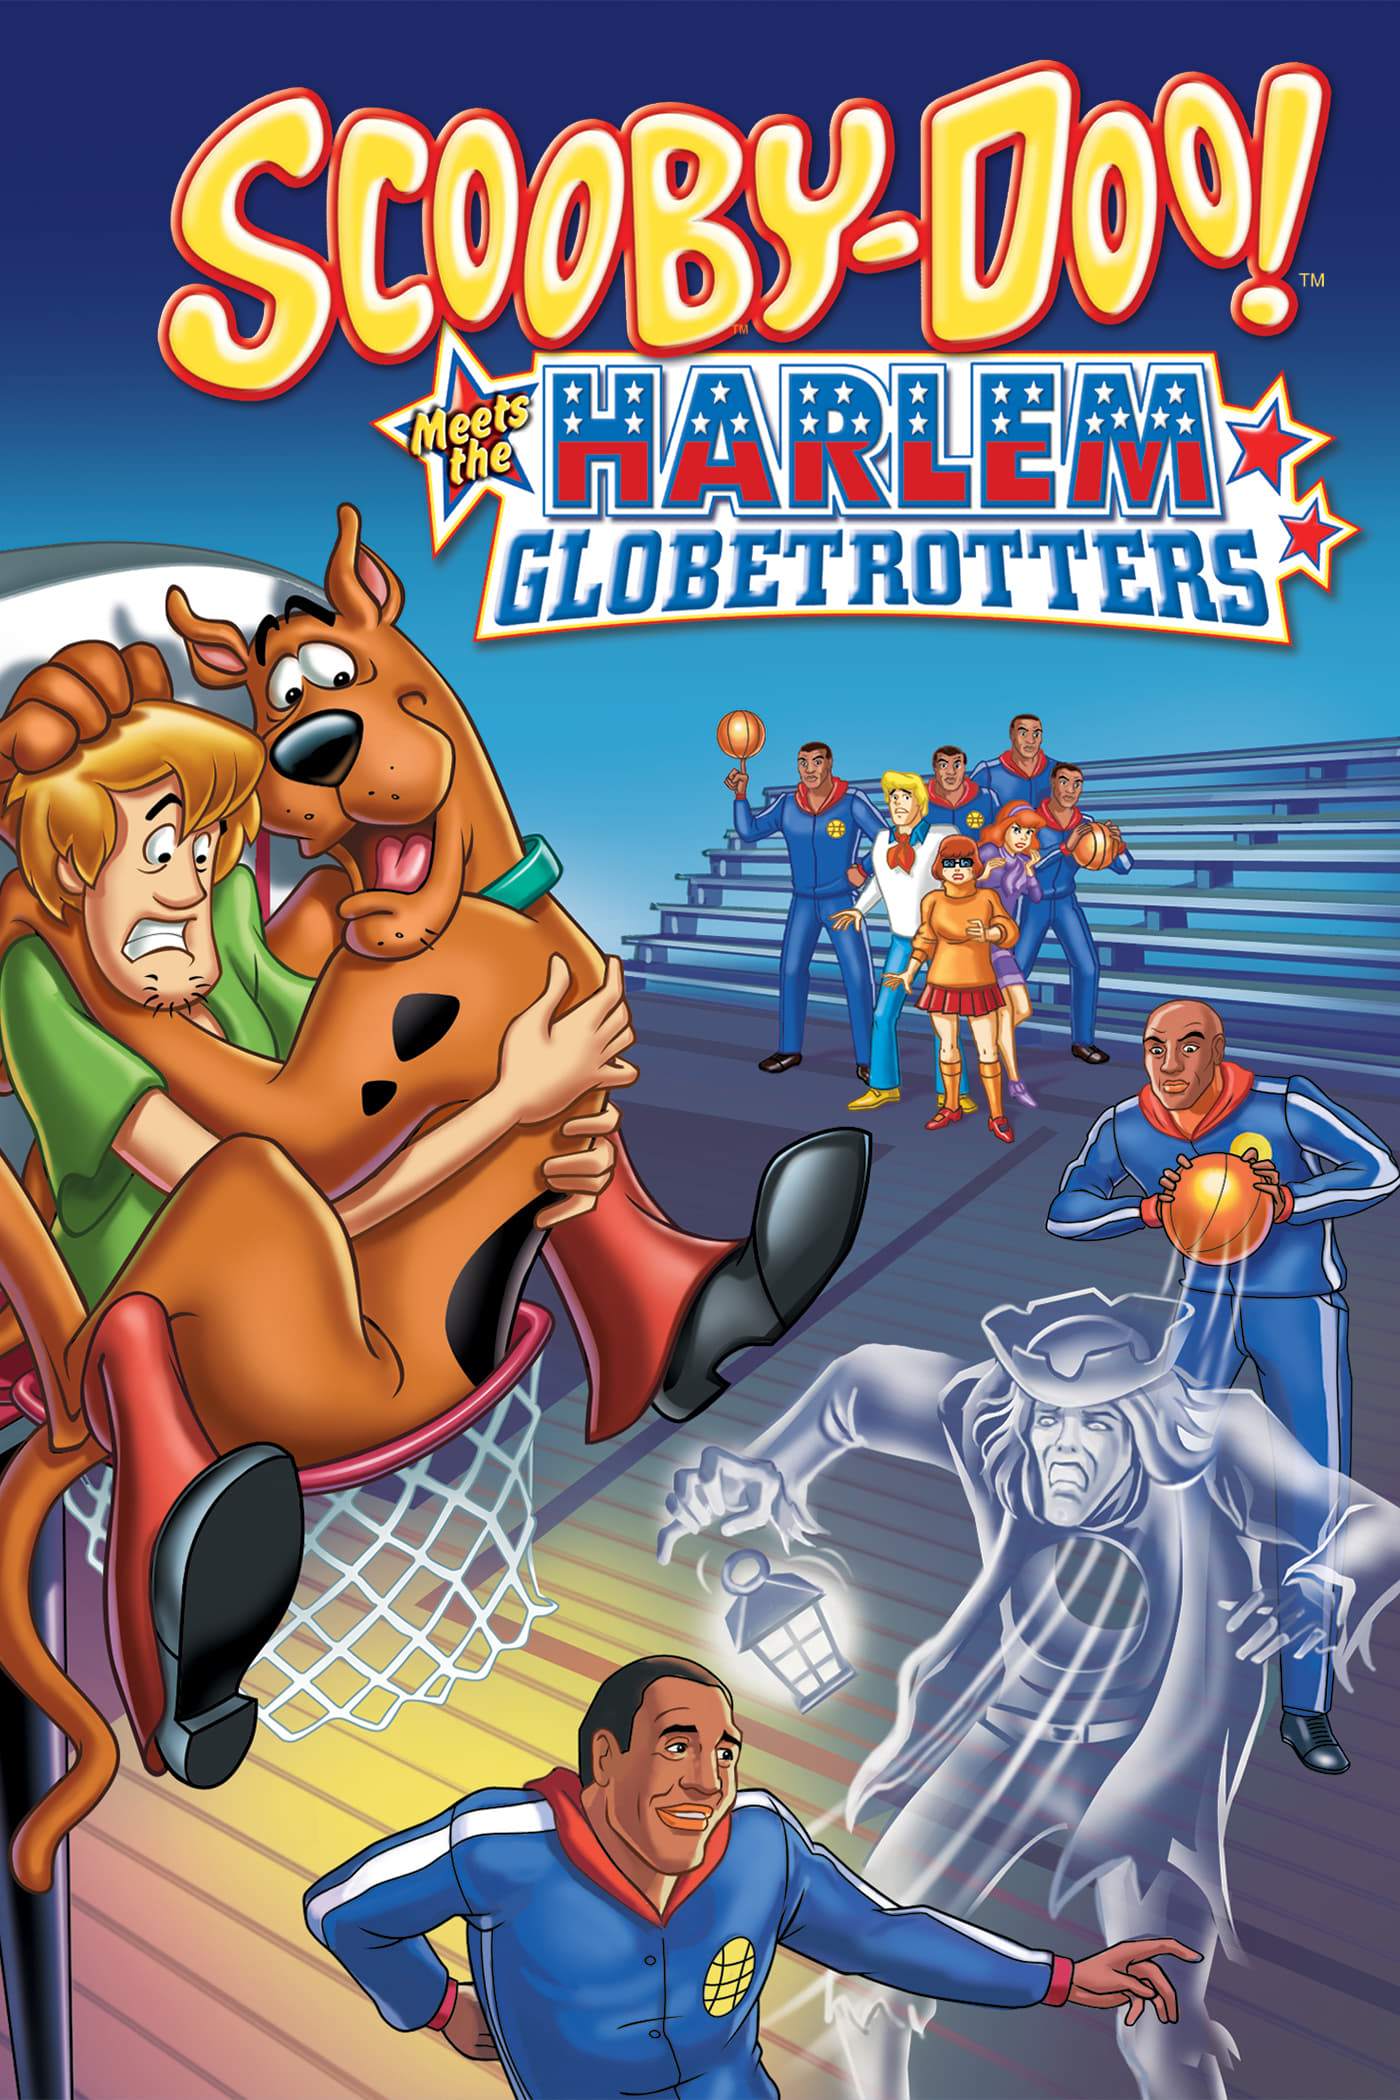 Scooby-Doo! Meets the Harlem Globetrotters